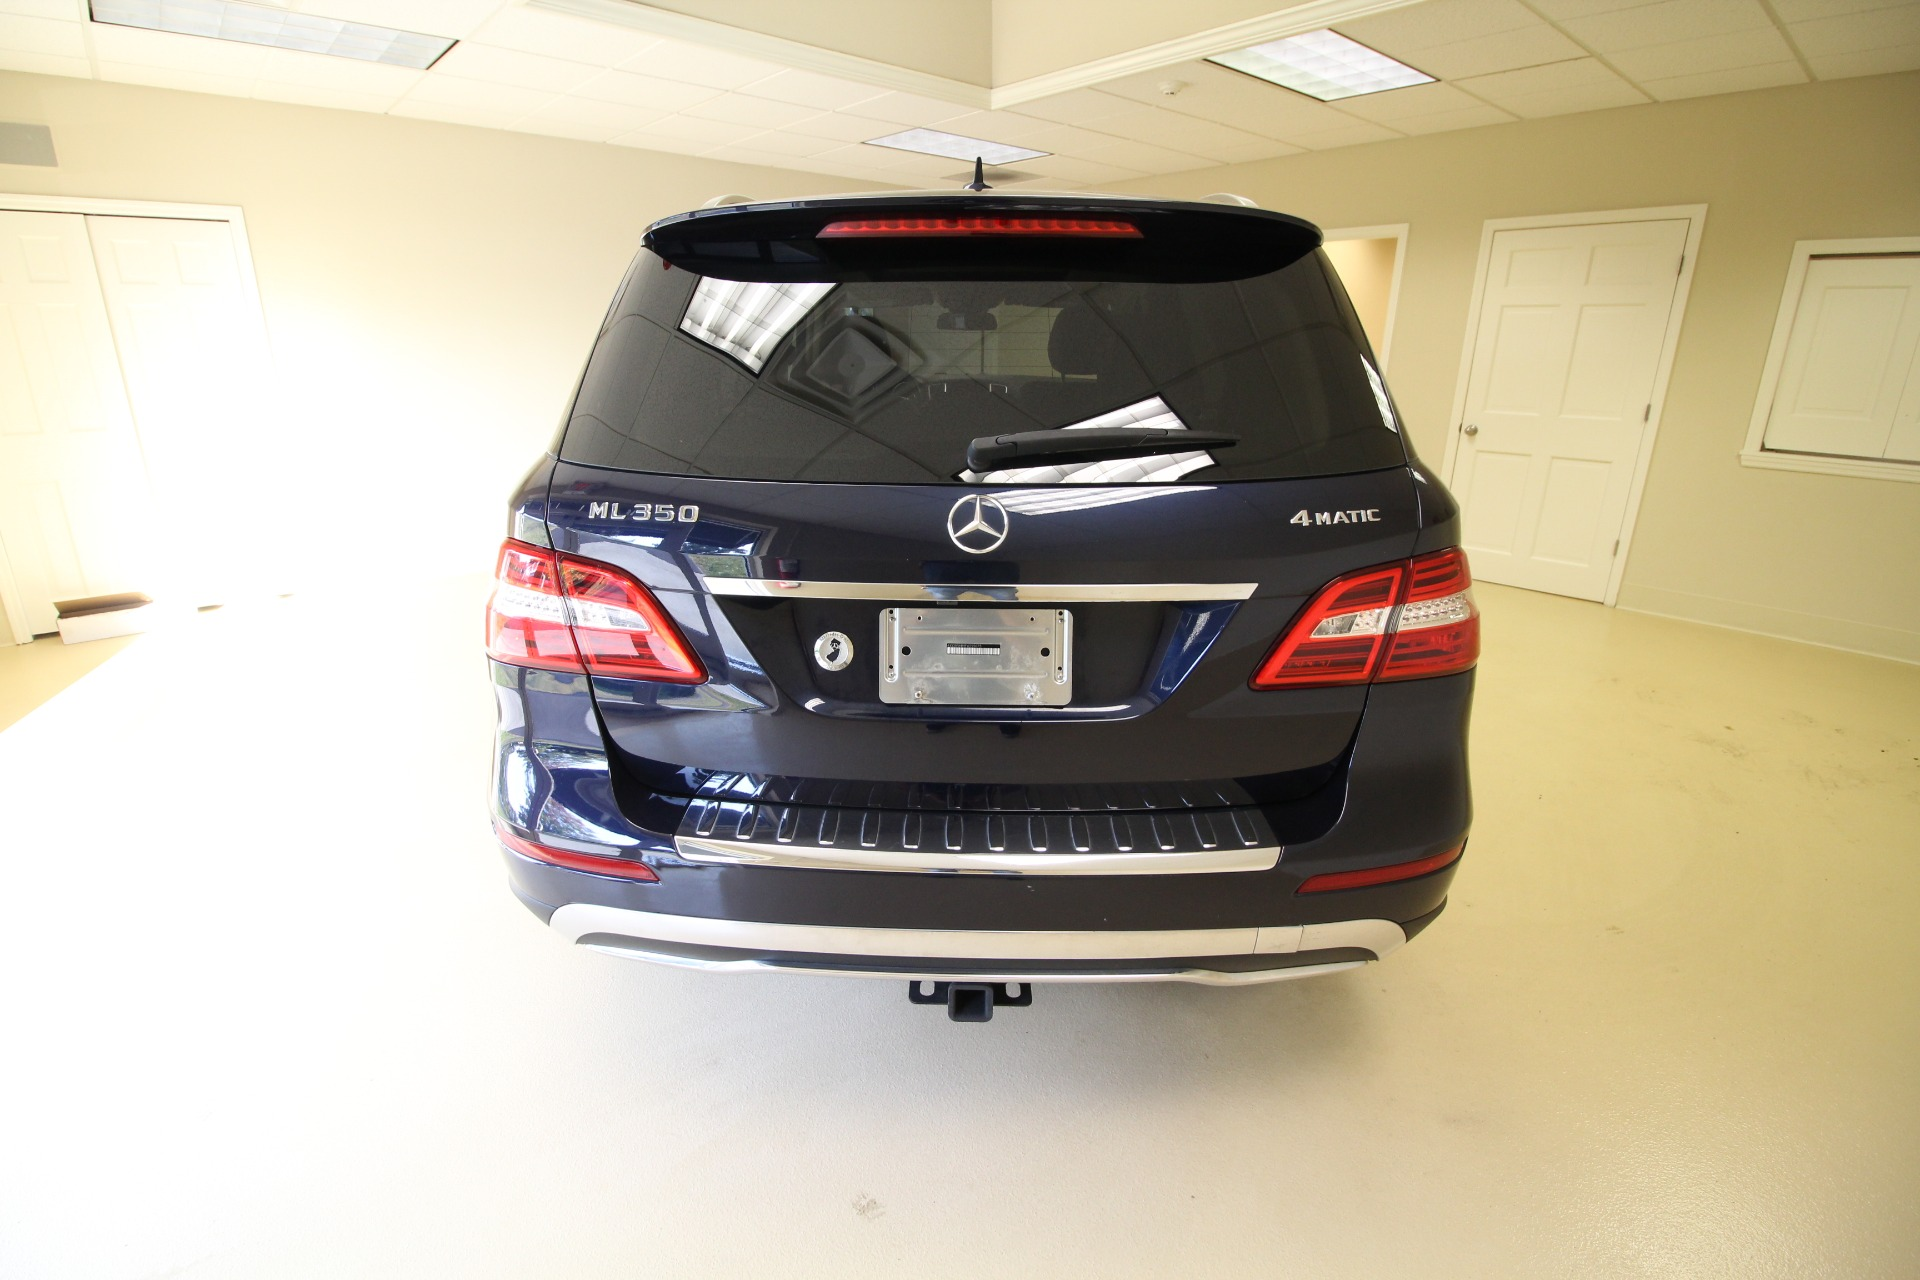 Used 2015 Mercedes-Benz M-Class ML350 4MATIC SUPERB CONDITION LOW MILES RARE COLOR COMBO | Albany, NY